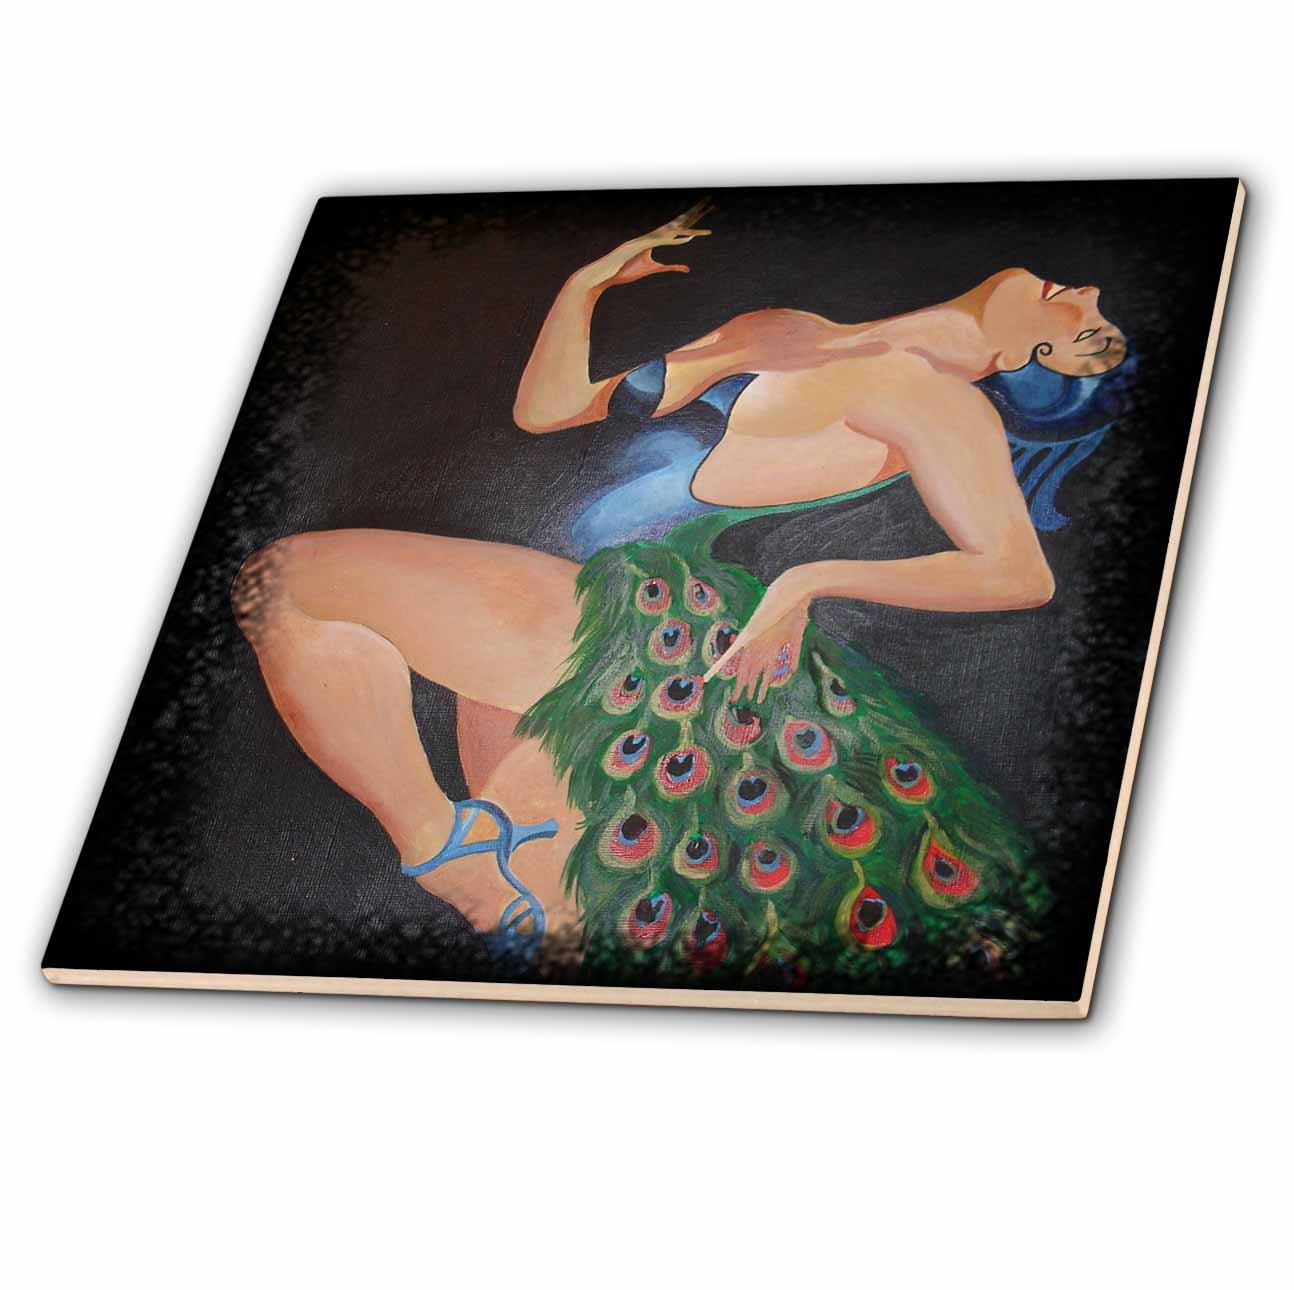 3dRose ct_24924_4 Woman Peacock Party Ceramic Tile, 12-Inch by 3dRose